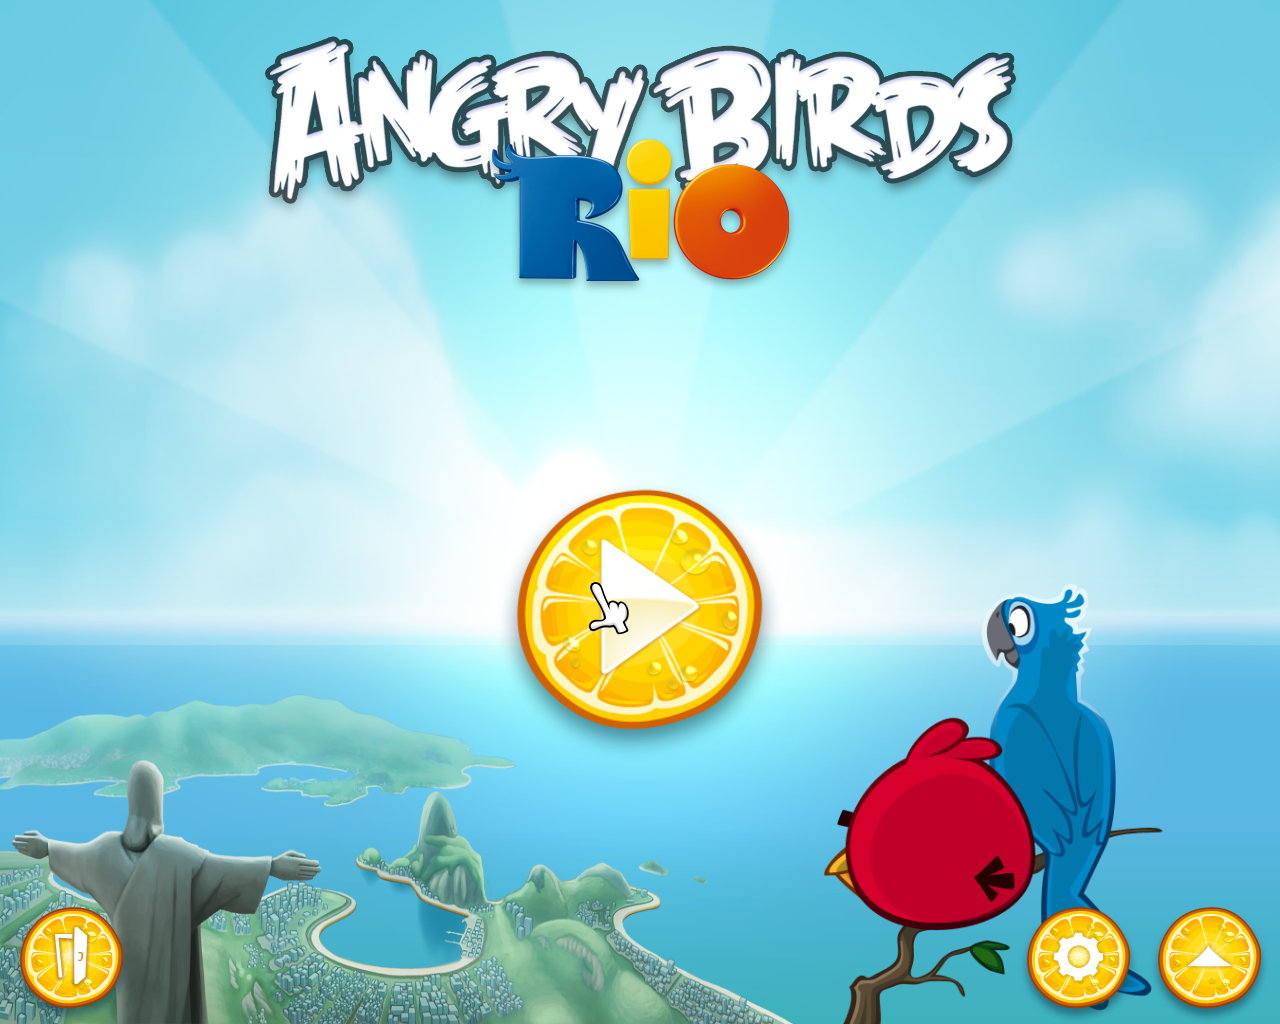 Enter the Geek: Download Angry Birds RIO for PC